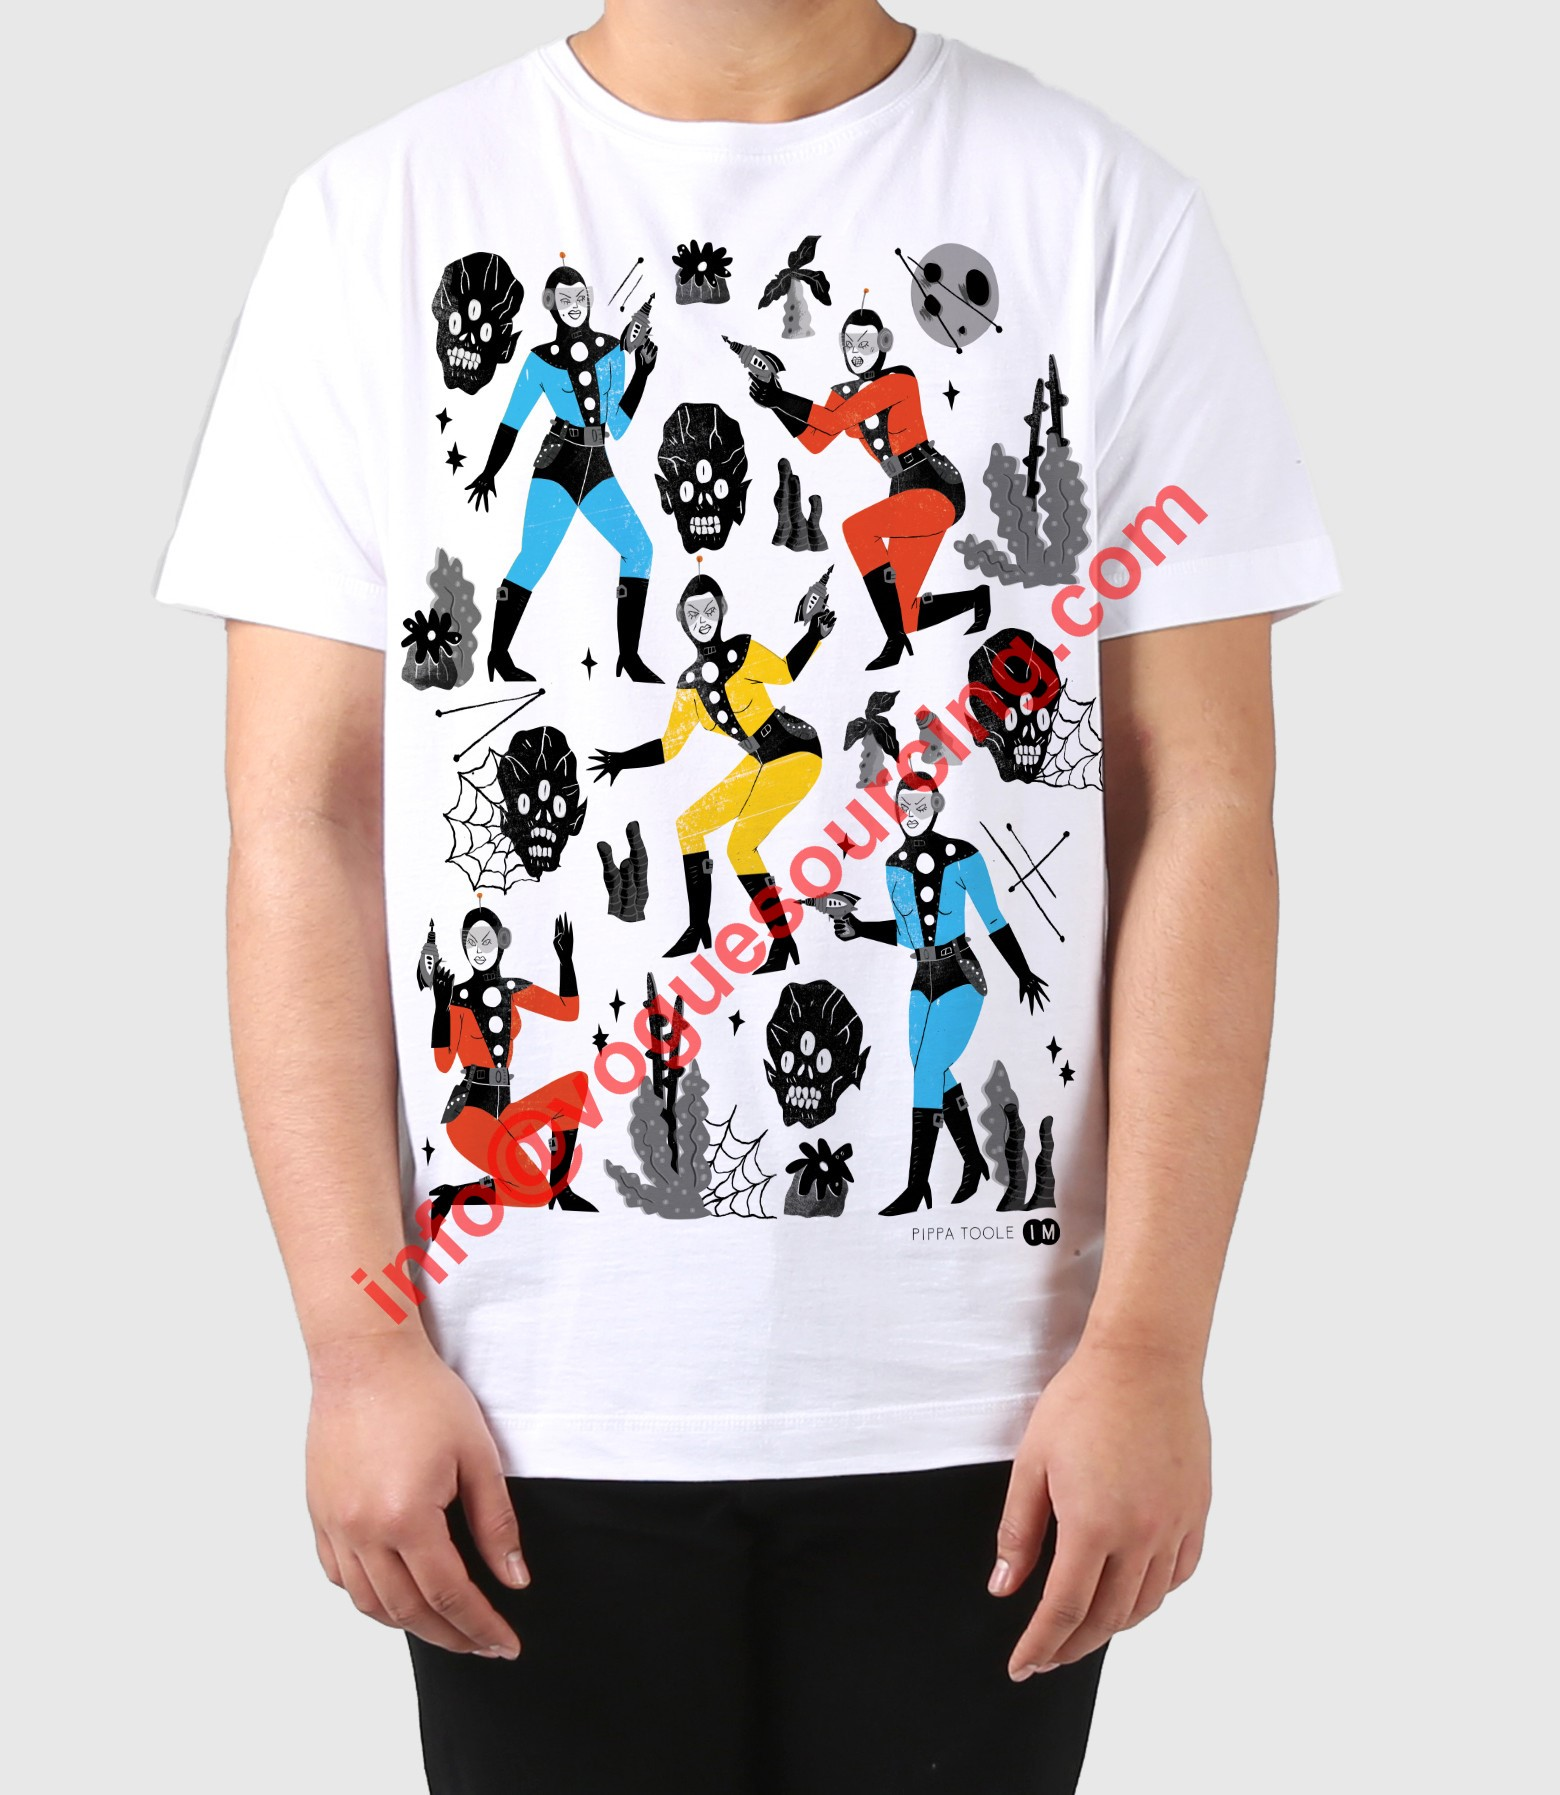 illustrative-t-shirts-manufacturers-voguesourcing-tirupur-india